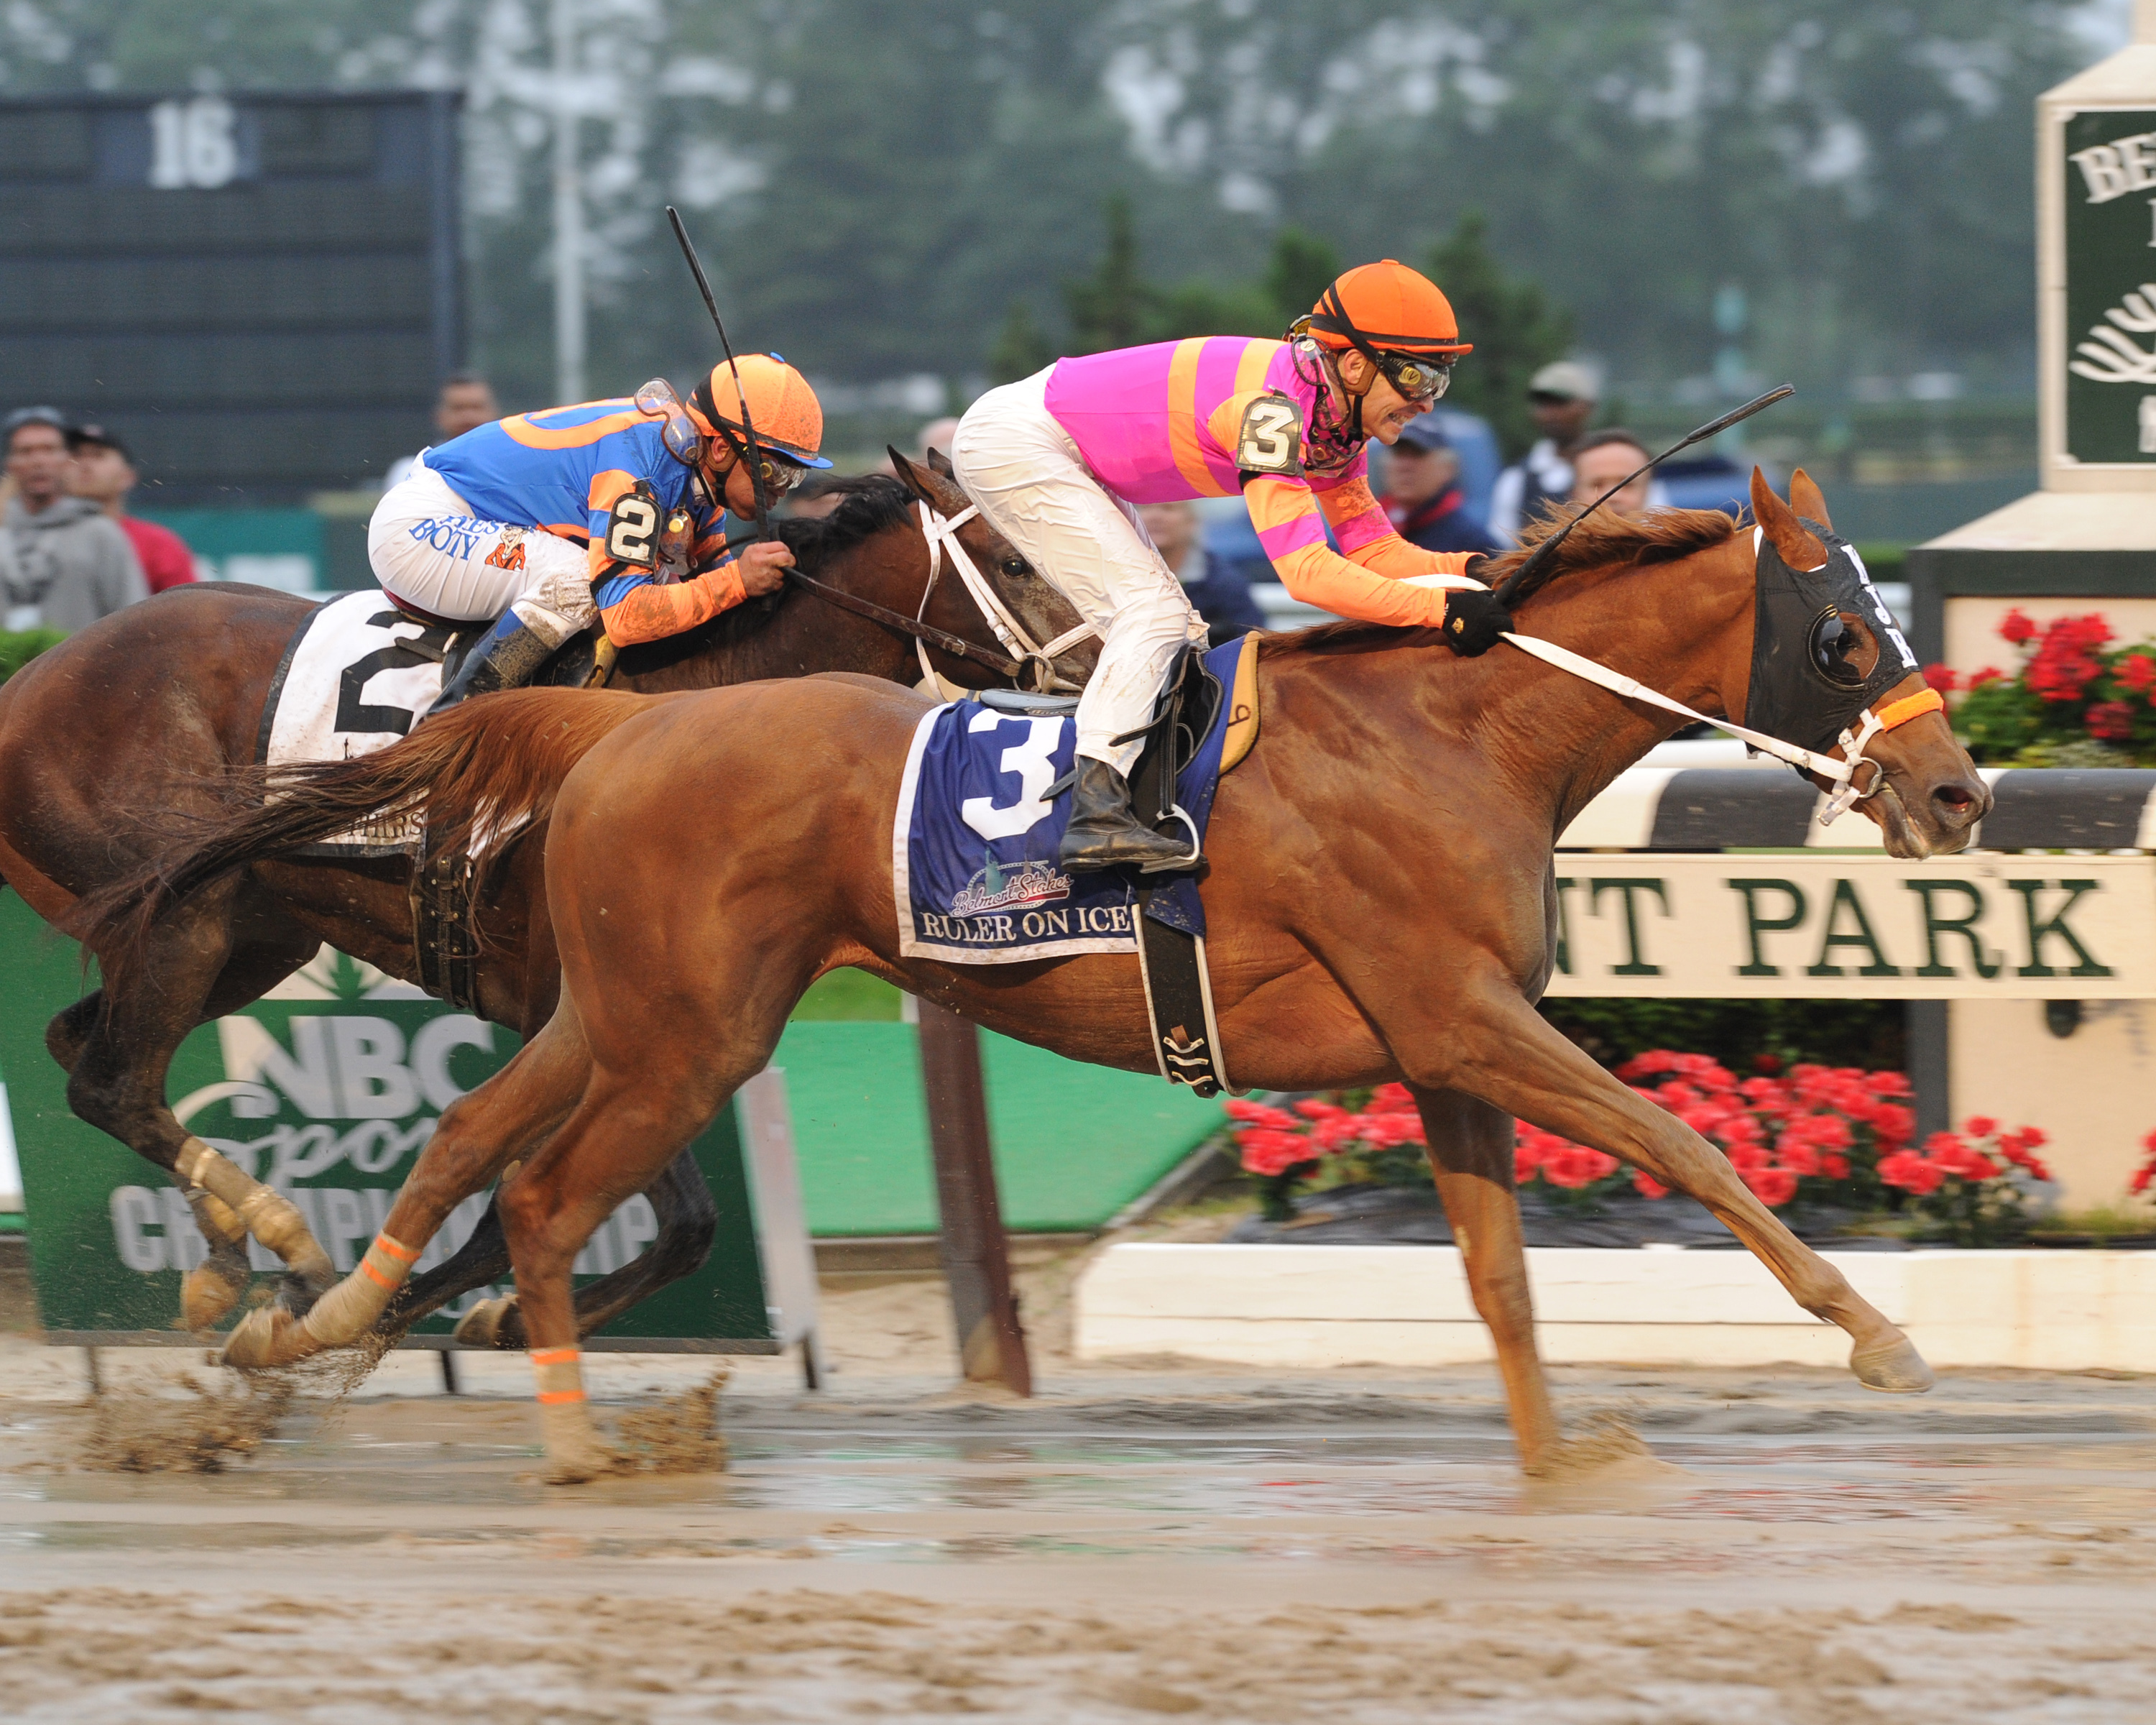 Where to watch the Belmont Stakes in NYC